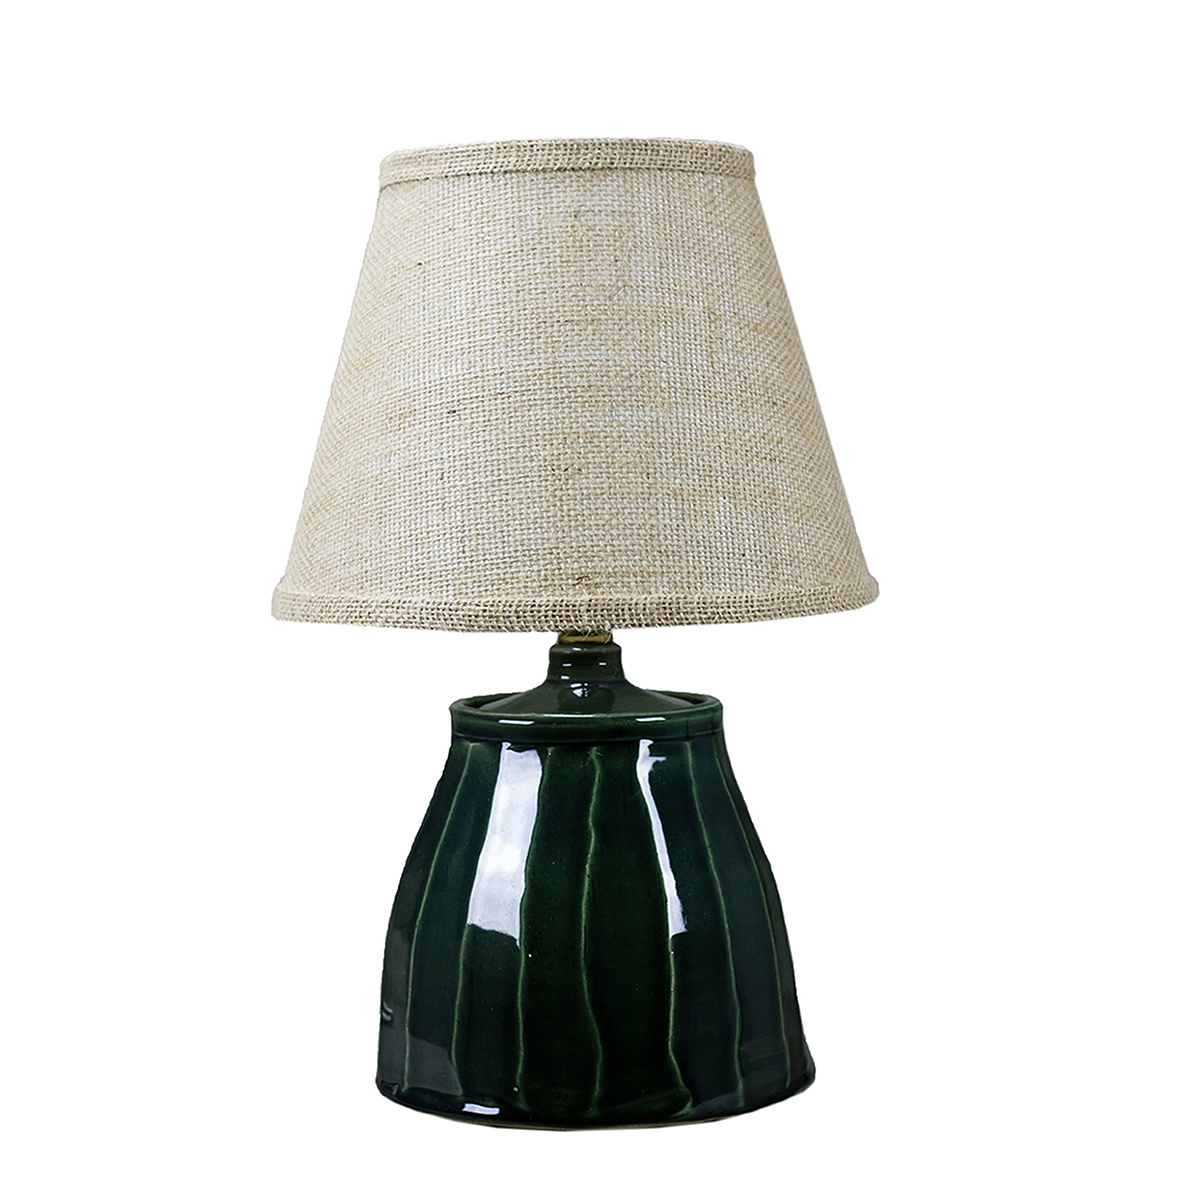 Flagstaff Table Lamp - Sage Green